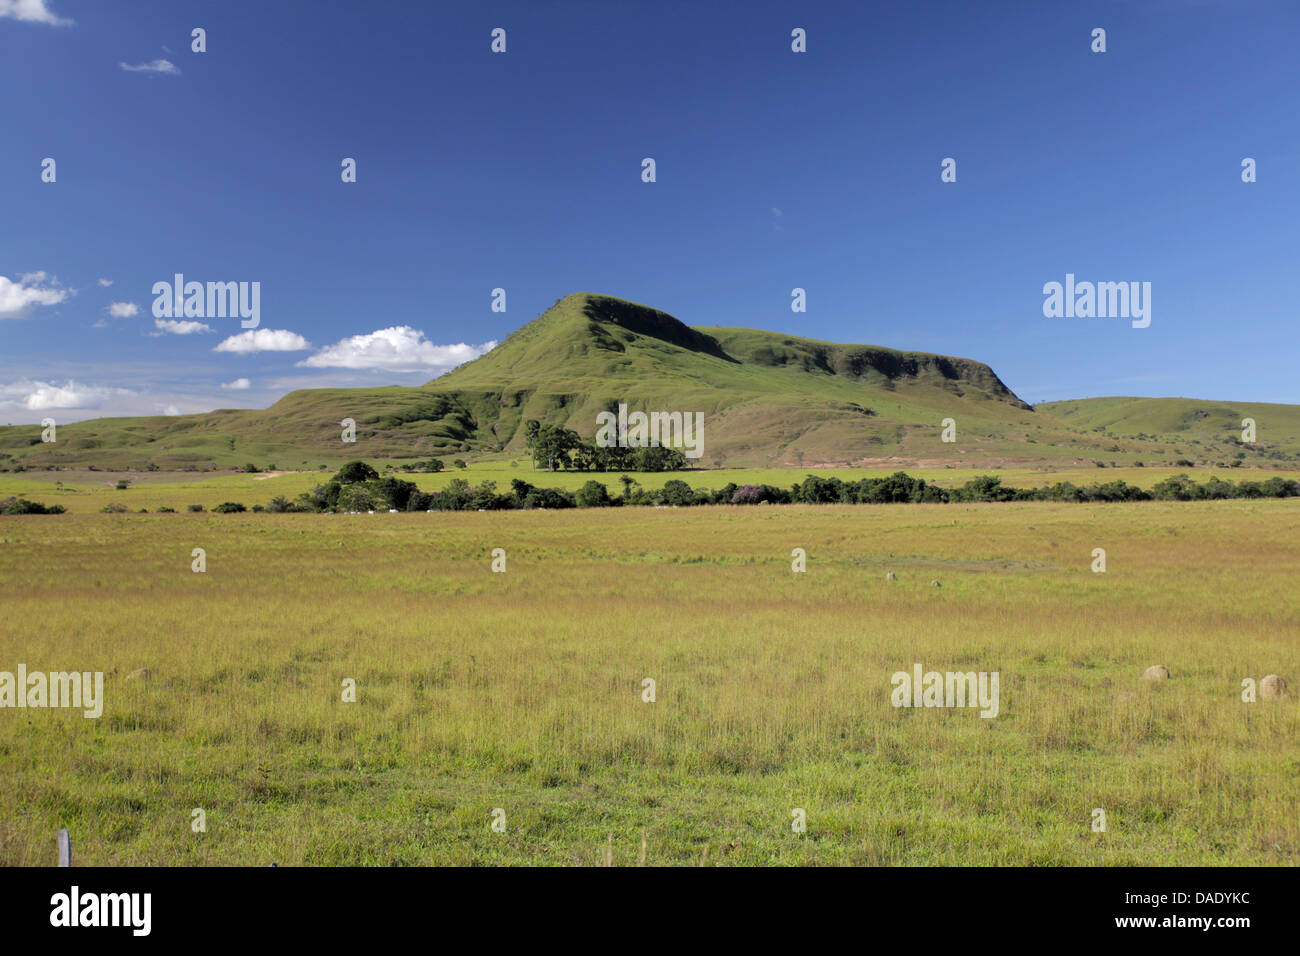 Field and mountain at Chapada dos Veadeiros in Goias state Brazil - Stock Image